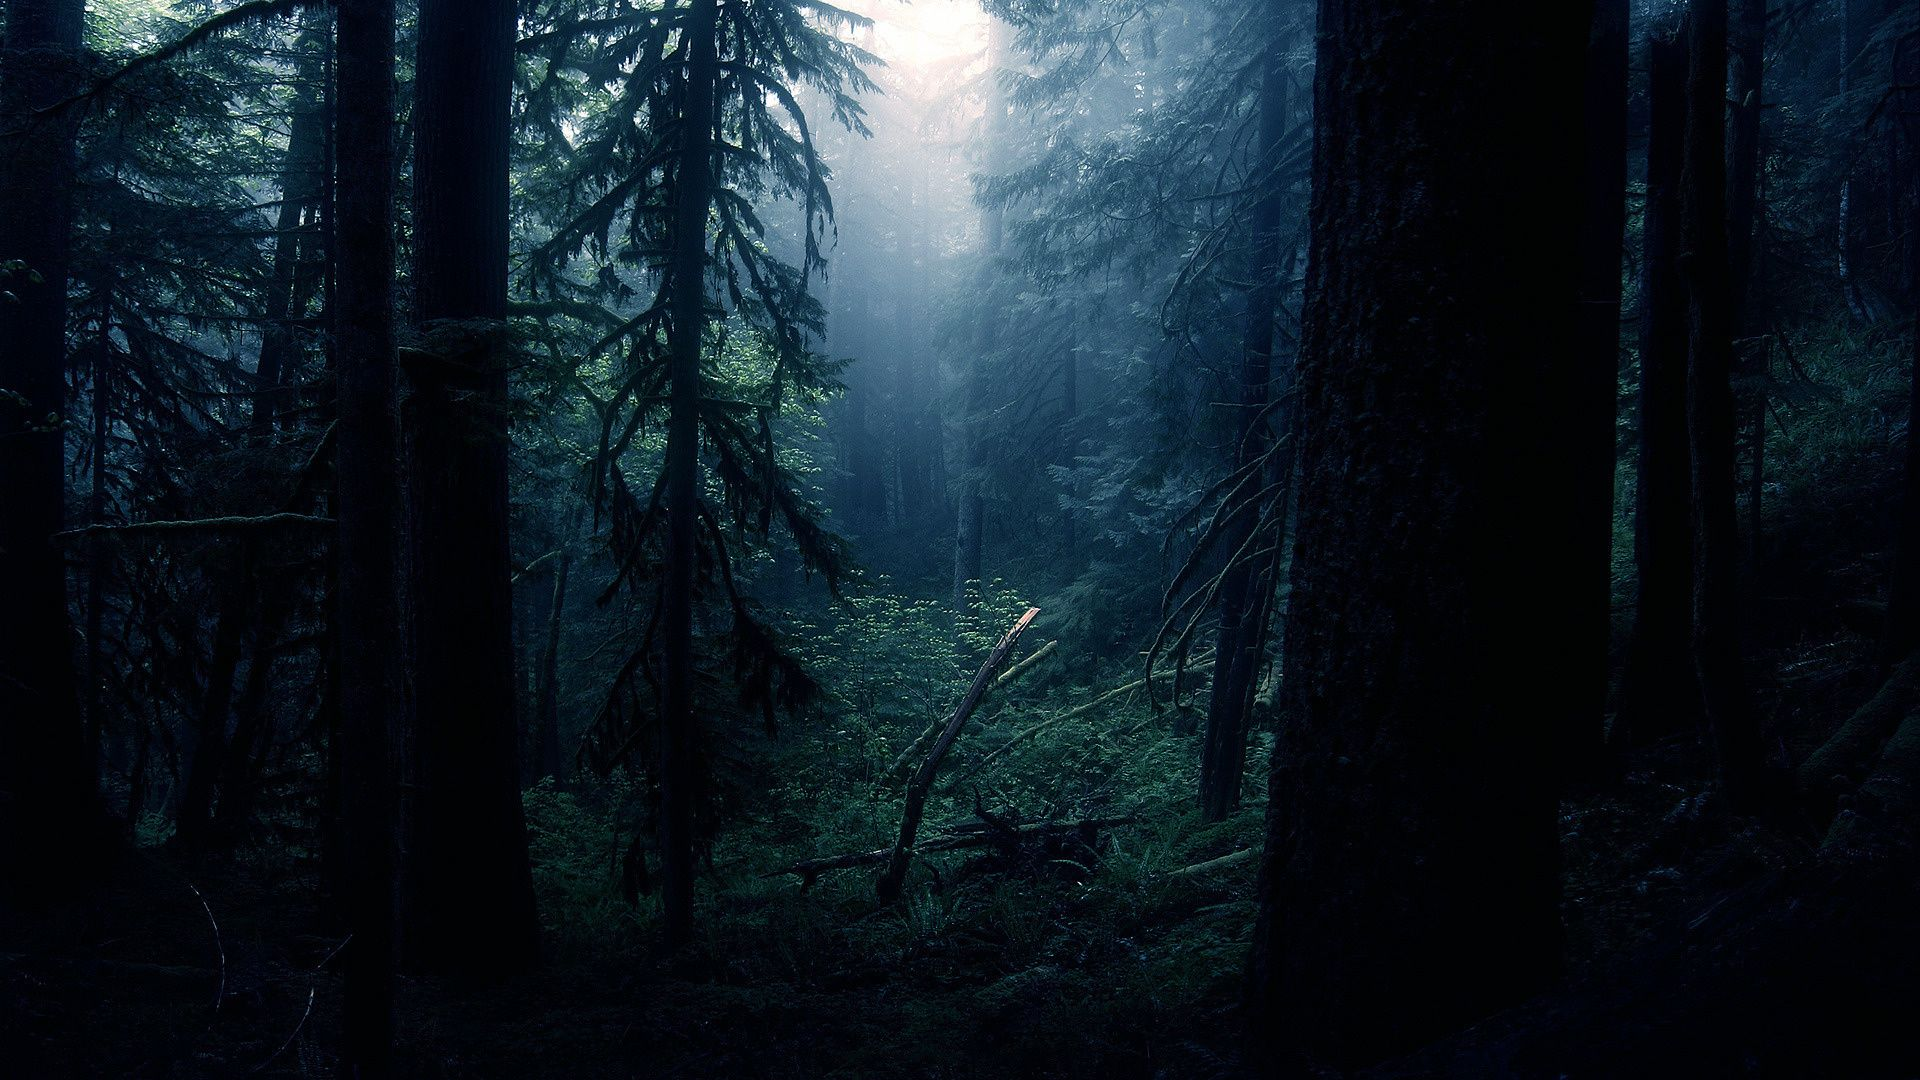 dark forest | dark forest wallpapers20 |hd wallpapers fan | full hd